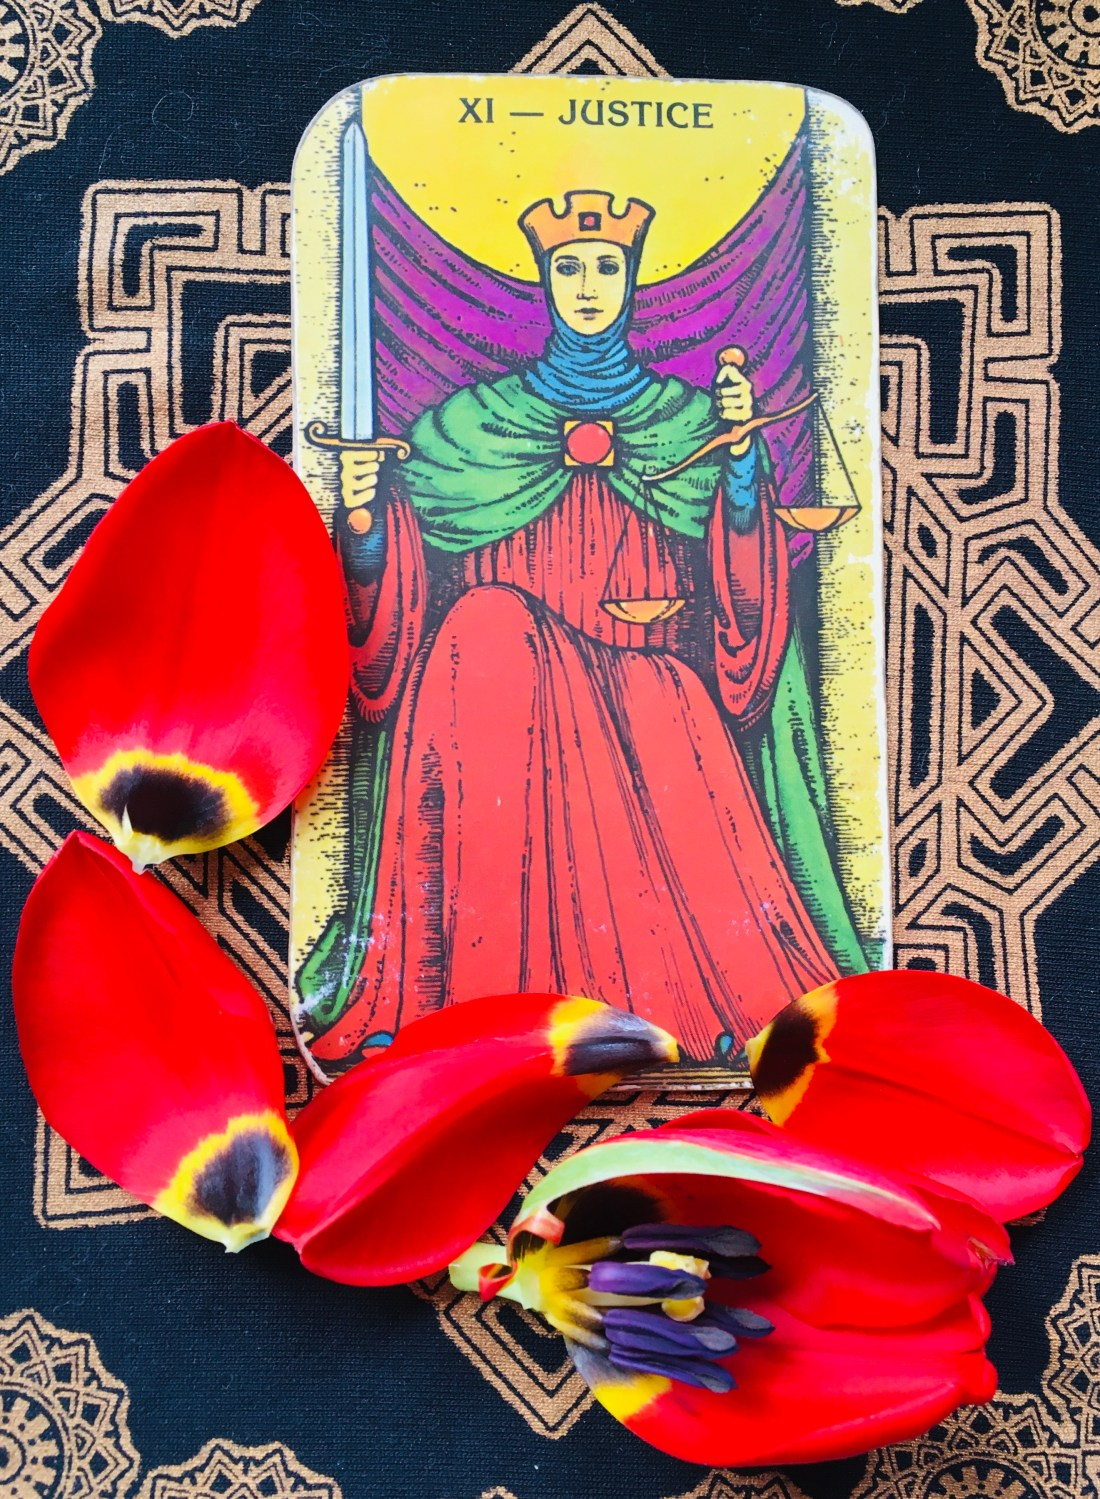 Justice Tarot card and what makes a good life?